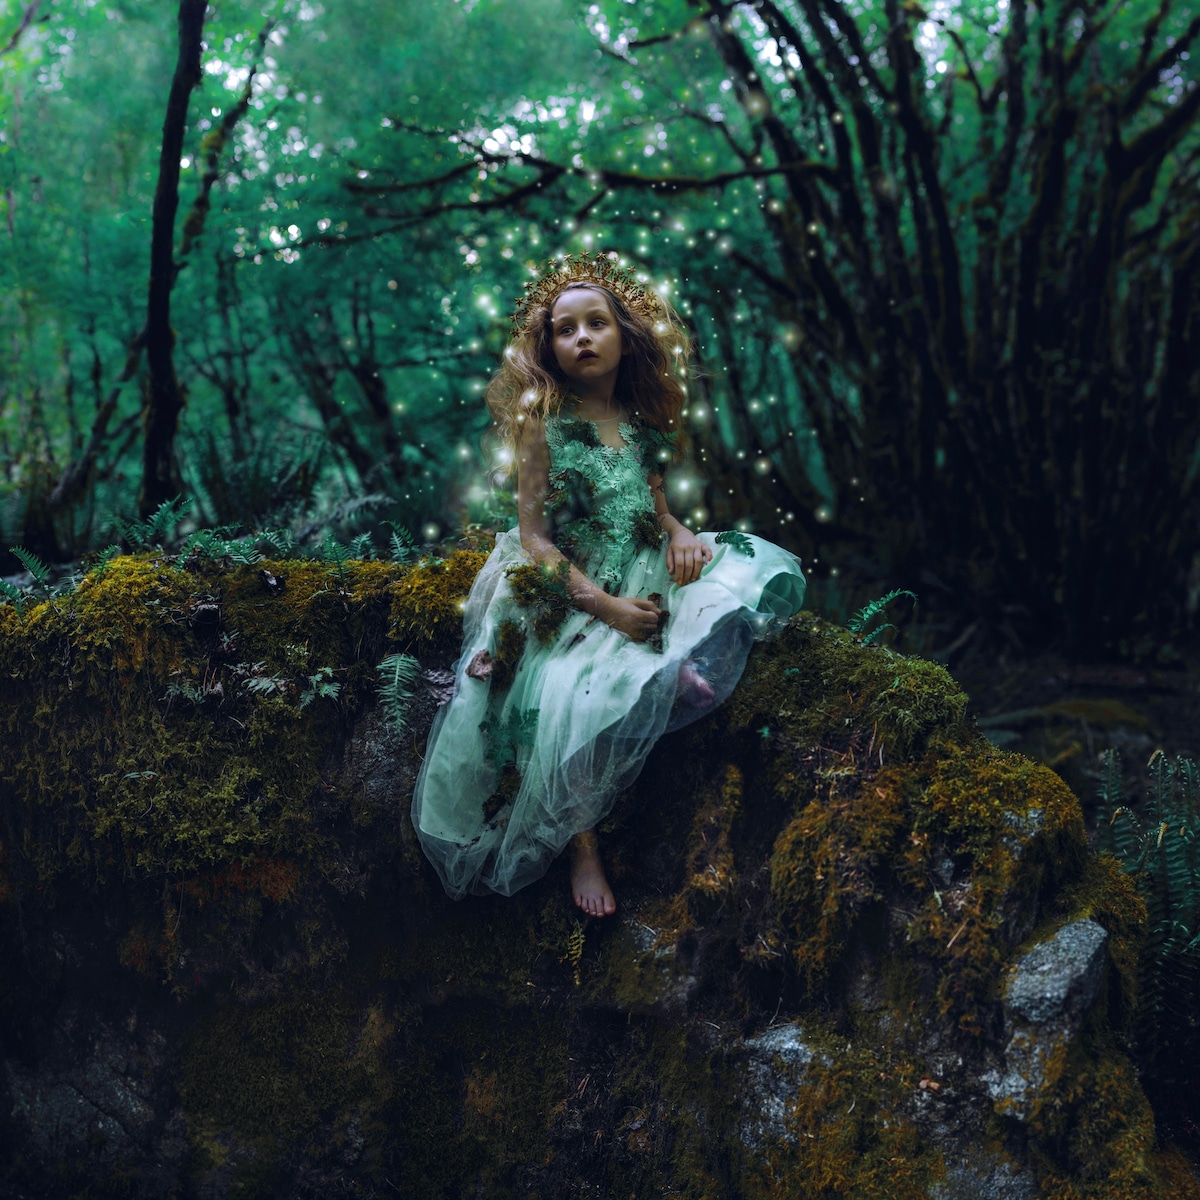 Enchanting Photography by Kindra Nikole